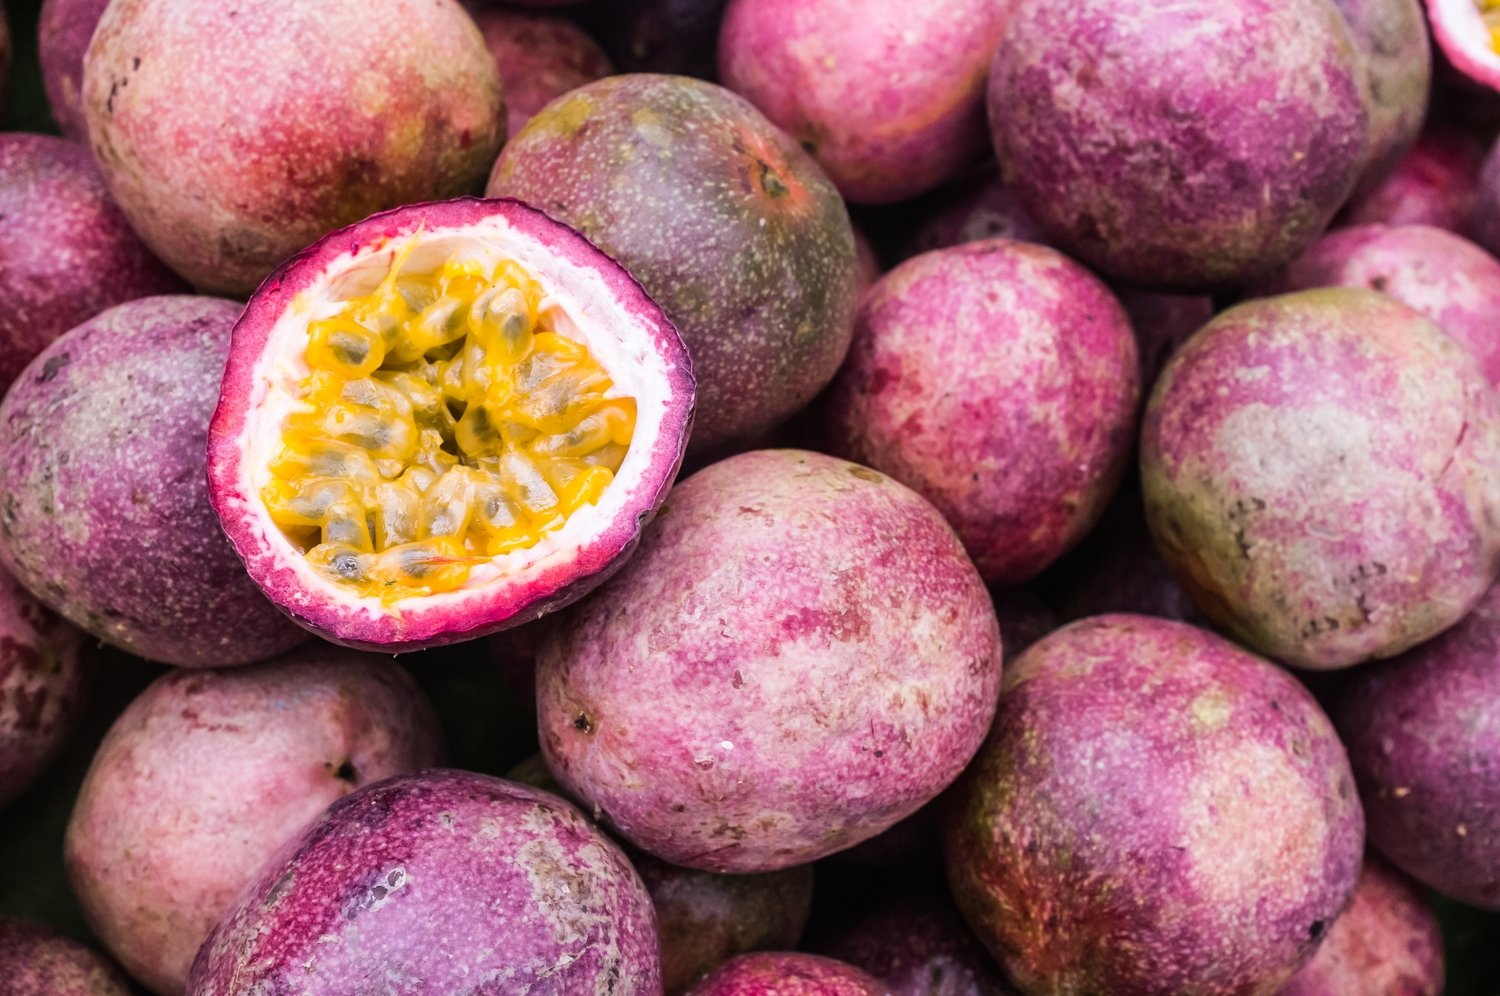 Red Passion Fruit - 24 plump fruits (or Equivalent 6 pounds) box - Fresh - Aromatic & Flavorful - Florida Grown, Seasonal, Tropical